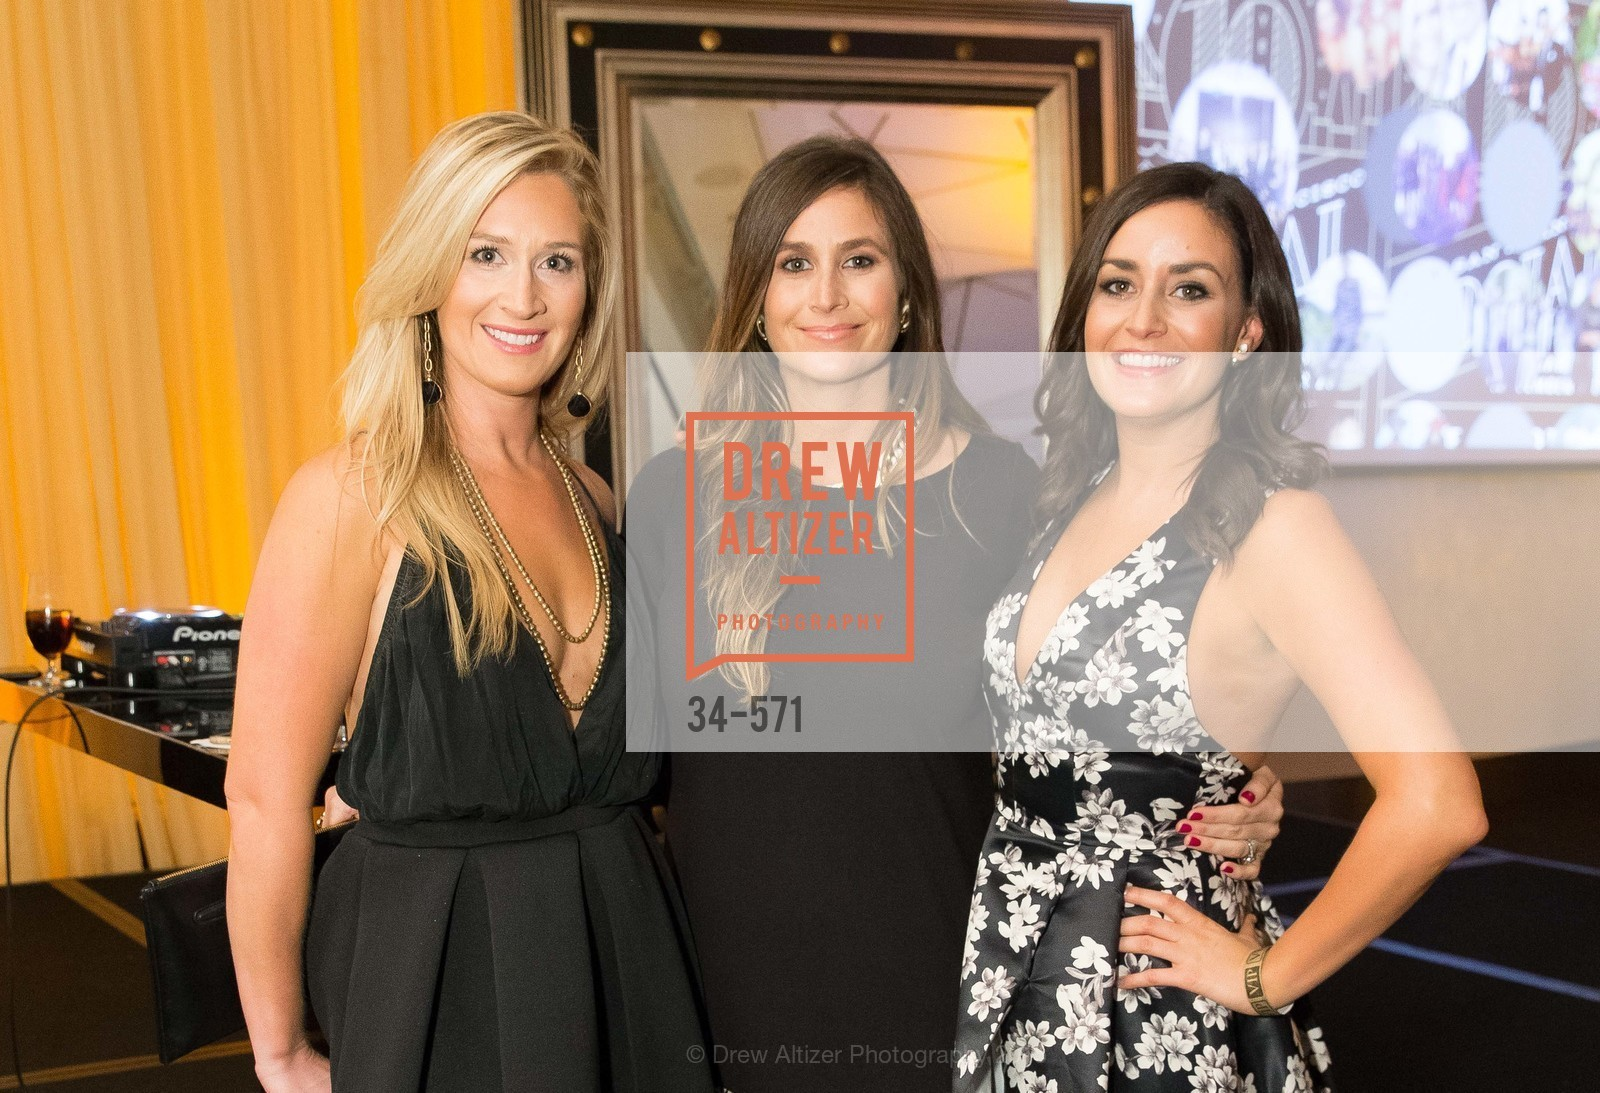 Danielle Leeke, Kelly Boynton, Kaitlyn Landers, The 10th Annual San Francisco Social, W Hotel. 181 3rd St, November 21st, 2015,Drew Altizer, Drew Altizer Photography, full-service agency, private events, San Francisco photographer, photographer california